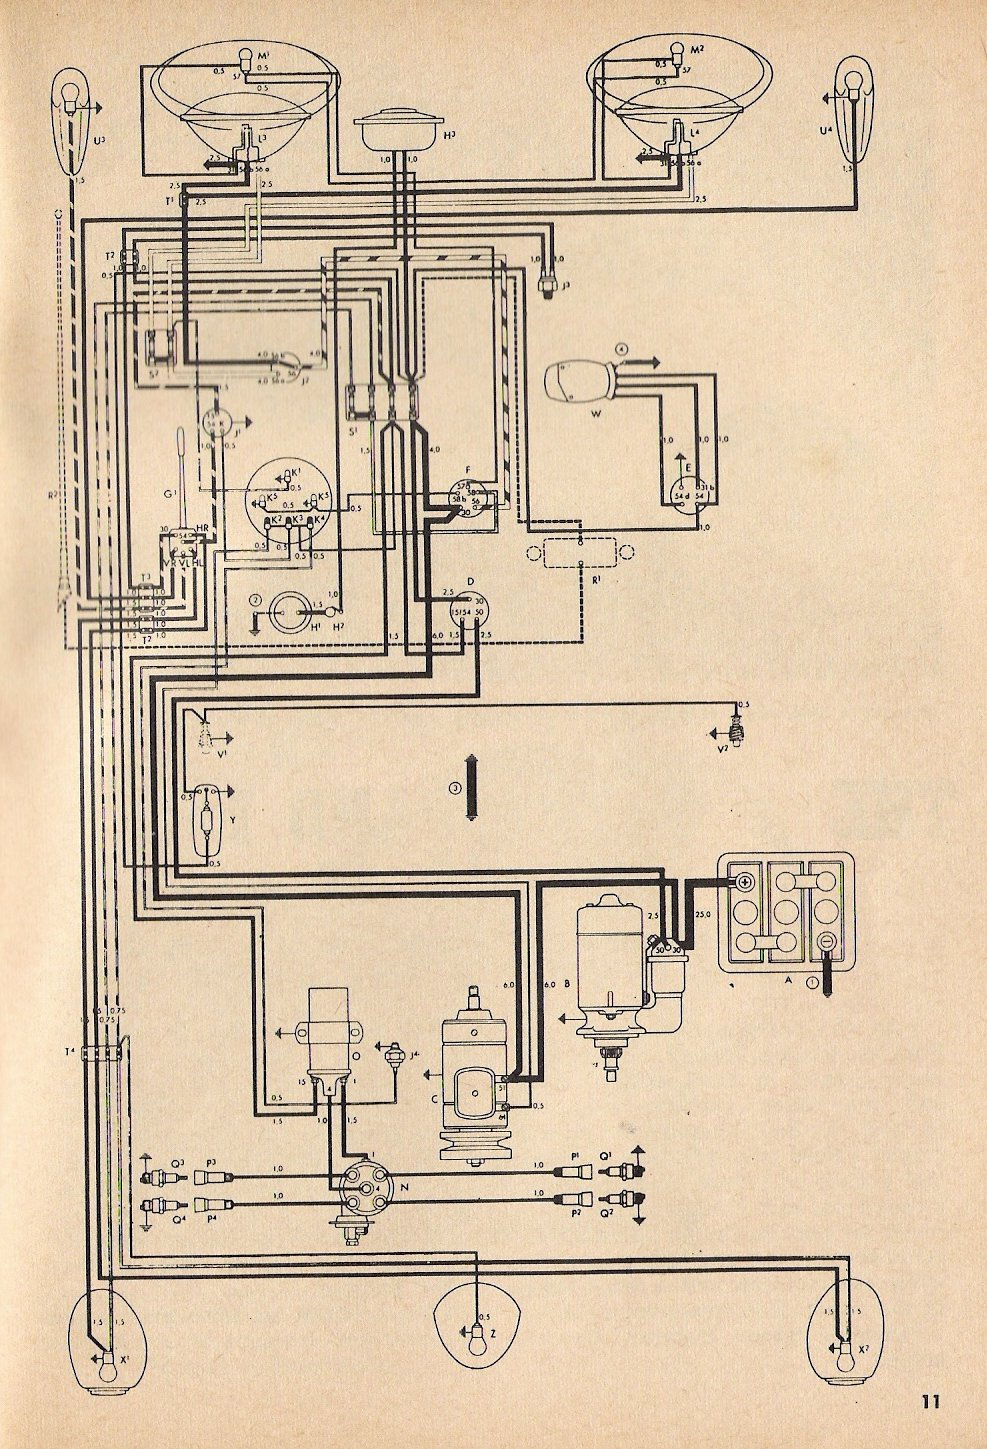 bug_toaug57 thesamba com type 1 wiring diagrams vw generator to alternator conversion wiring diagram at gsmportal.co